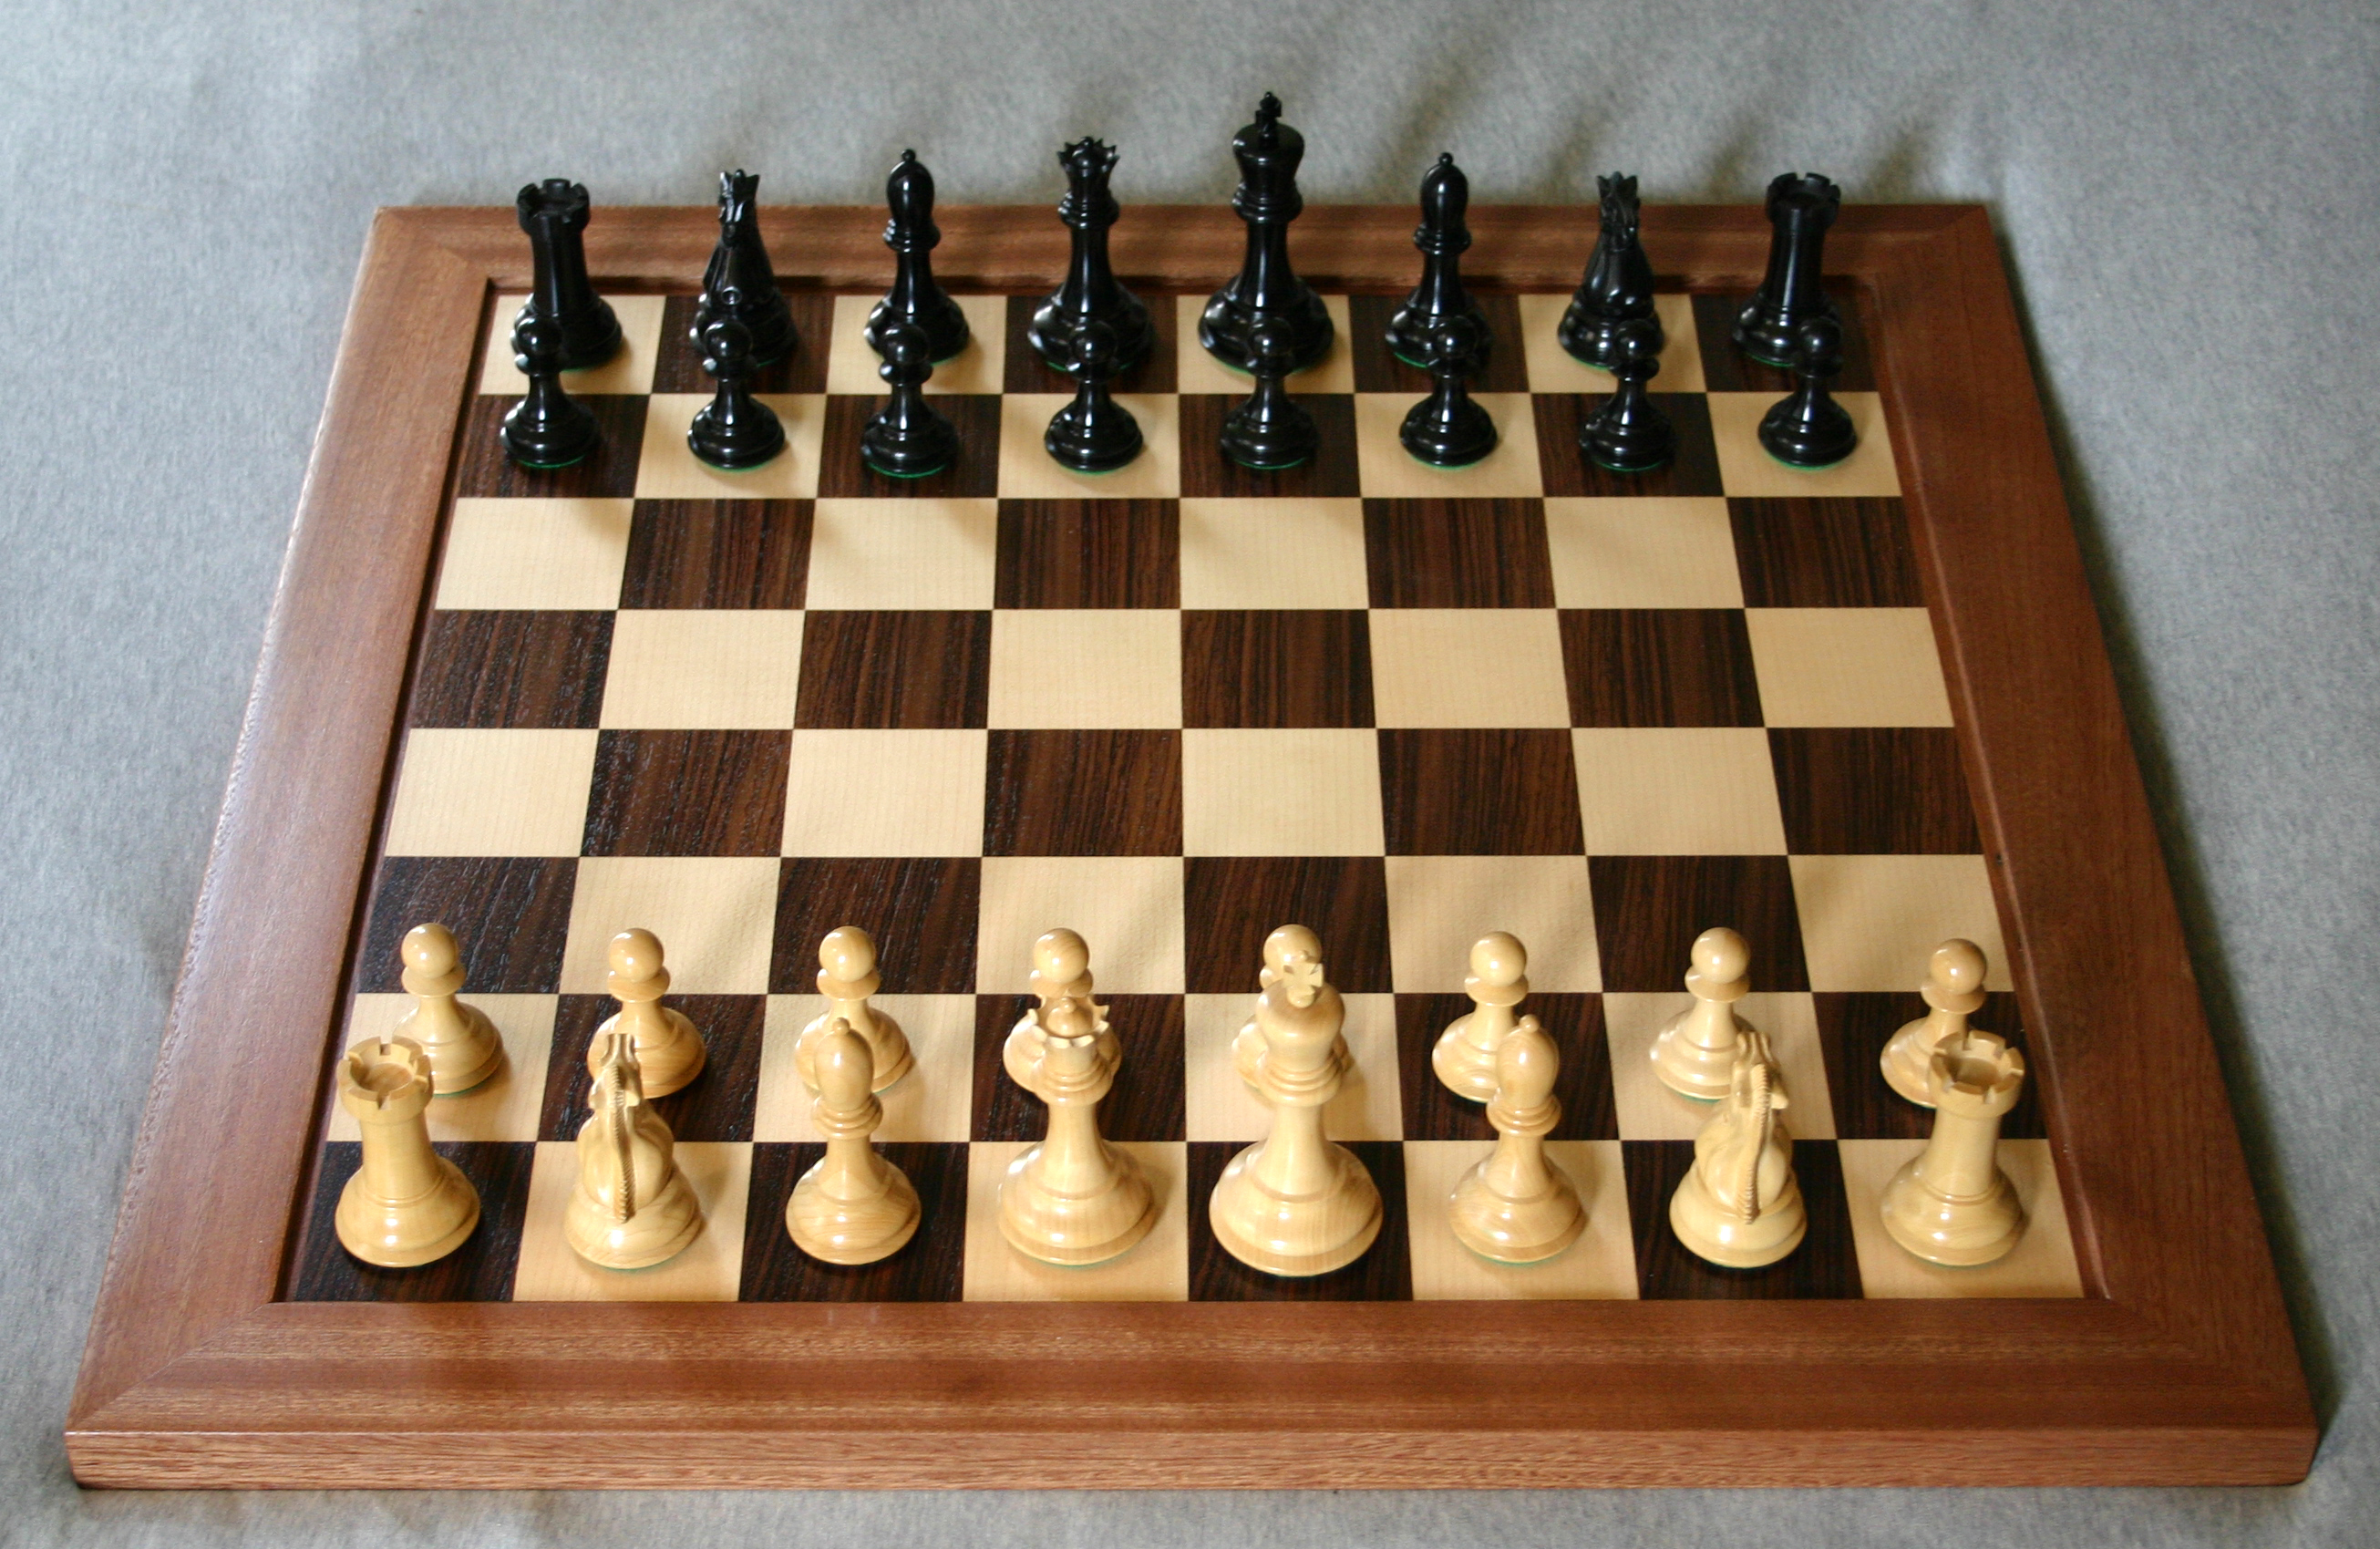 A Wooden Chessboard With Staunton Pieces